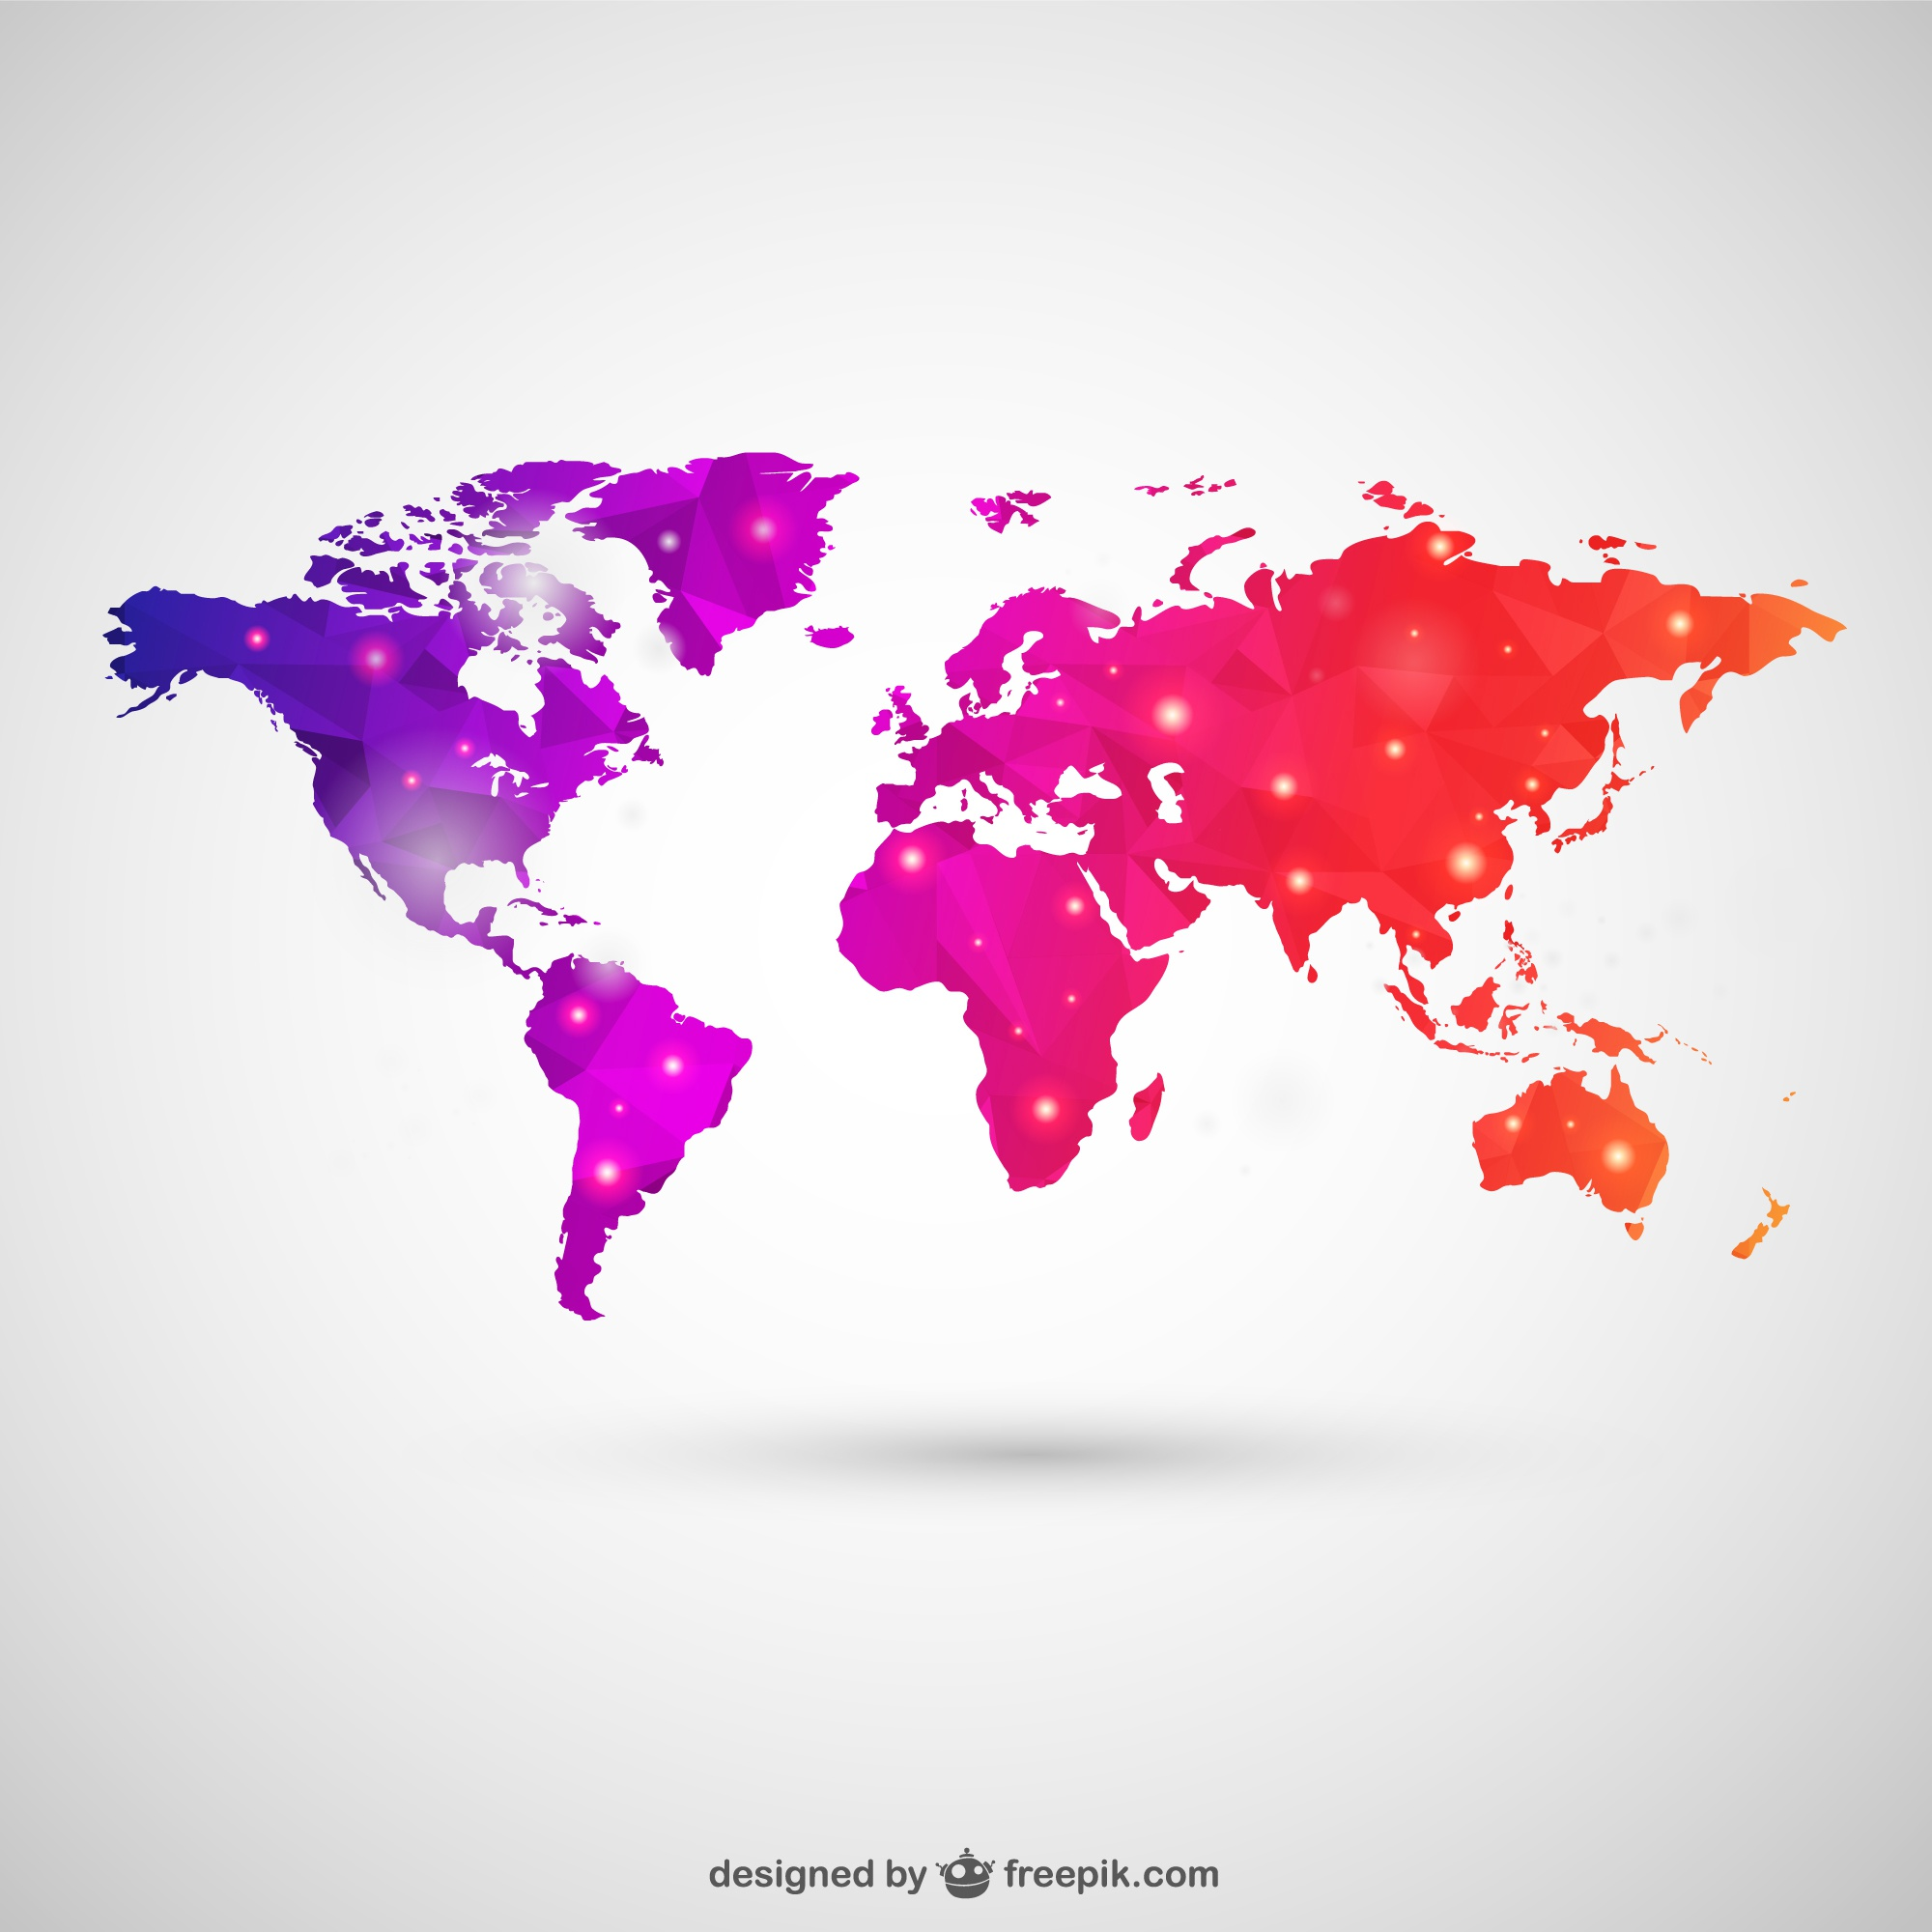 World map free vector template